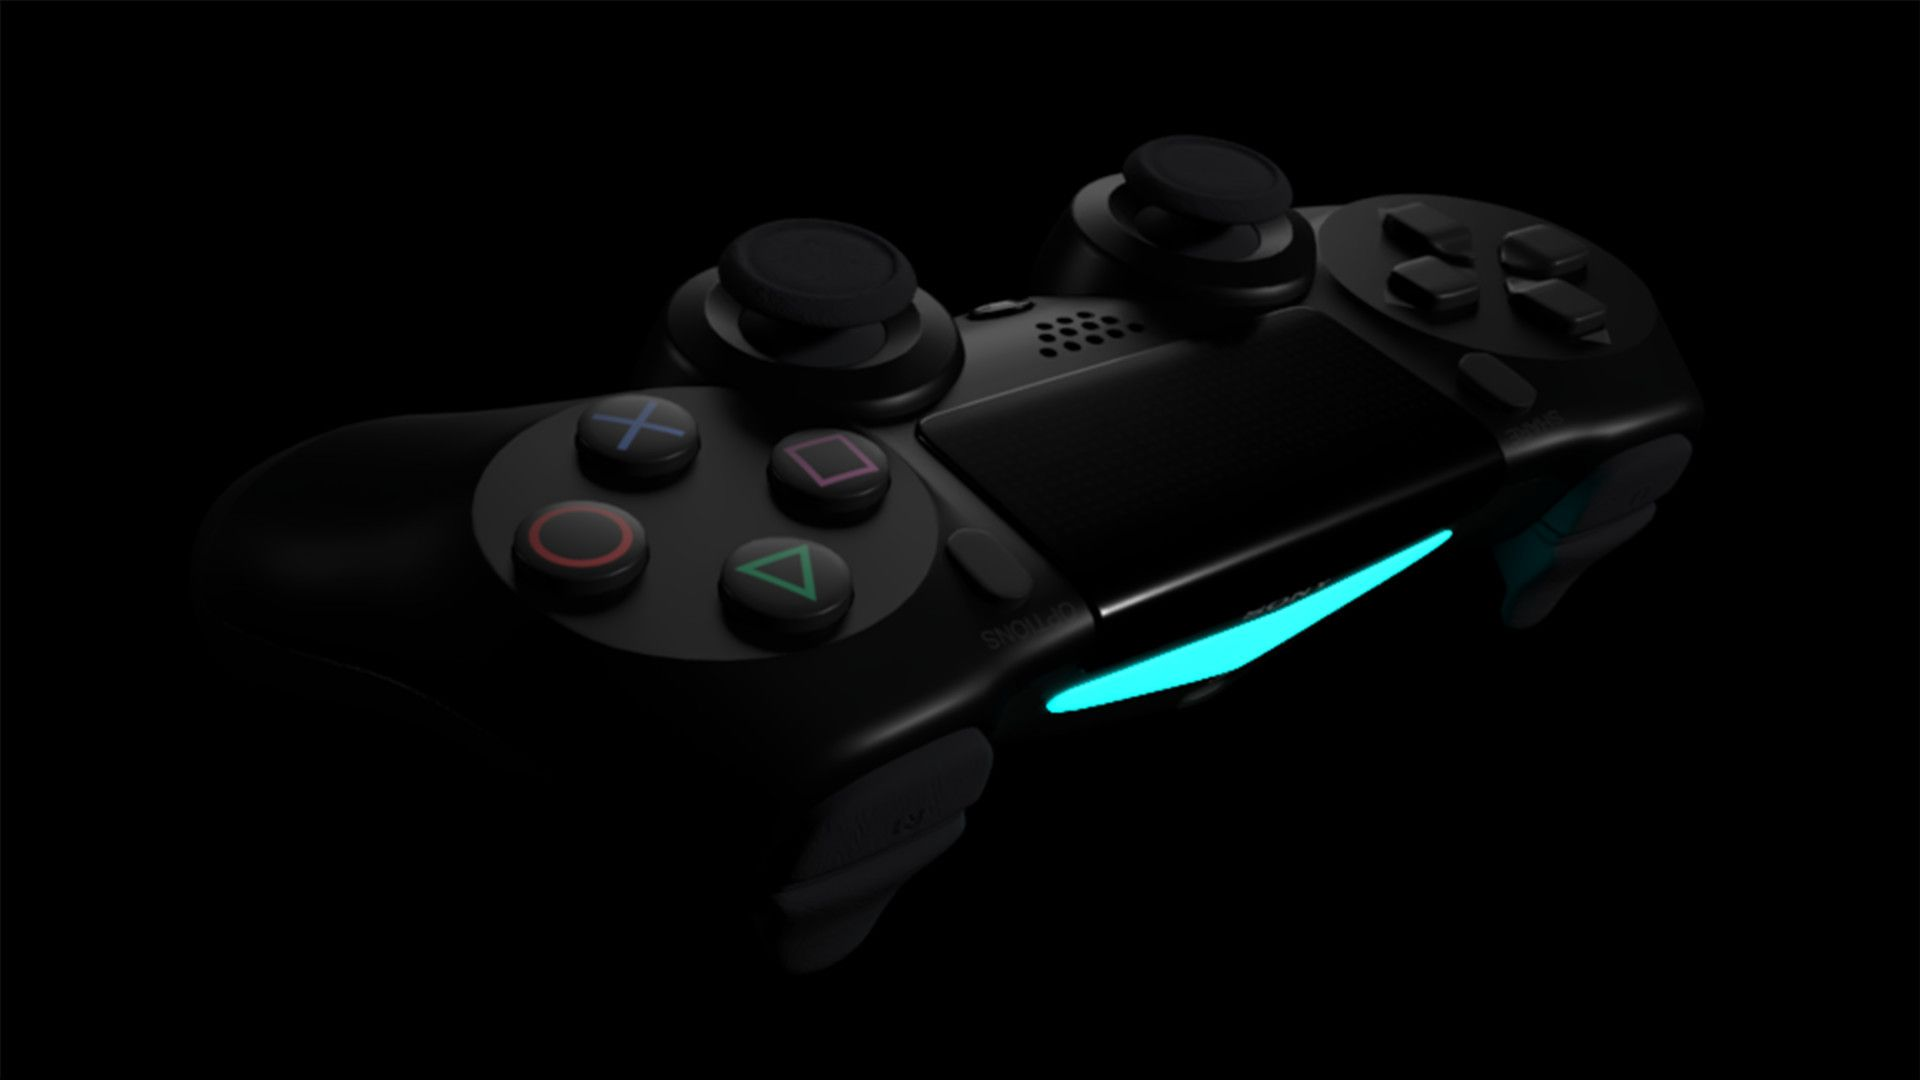 Ps4 Controller Wallpapers Top Free Ps4 Controller